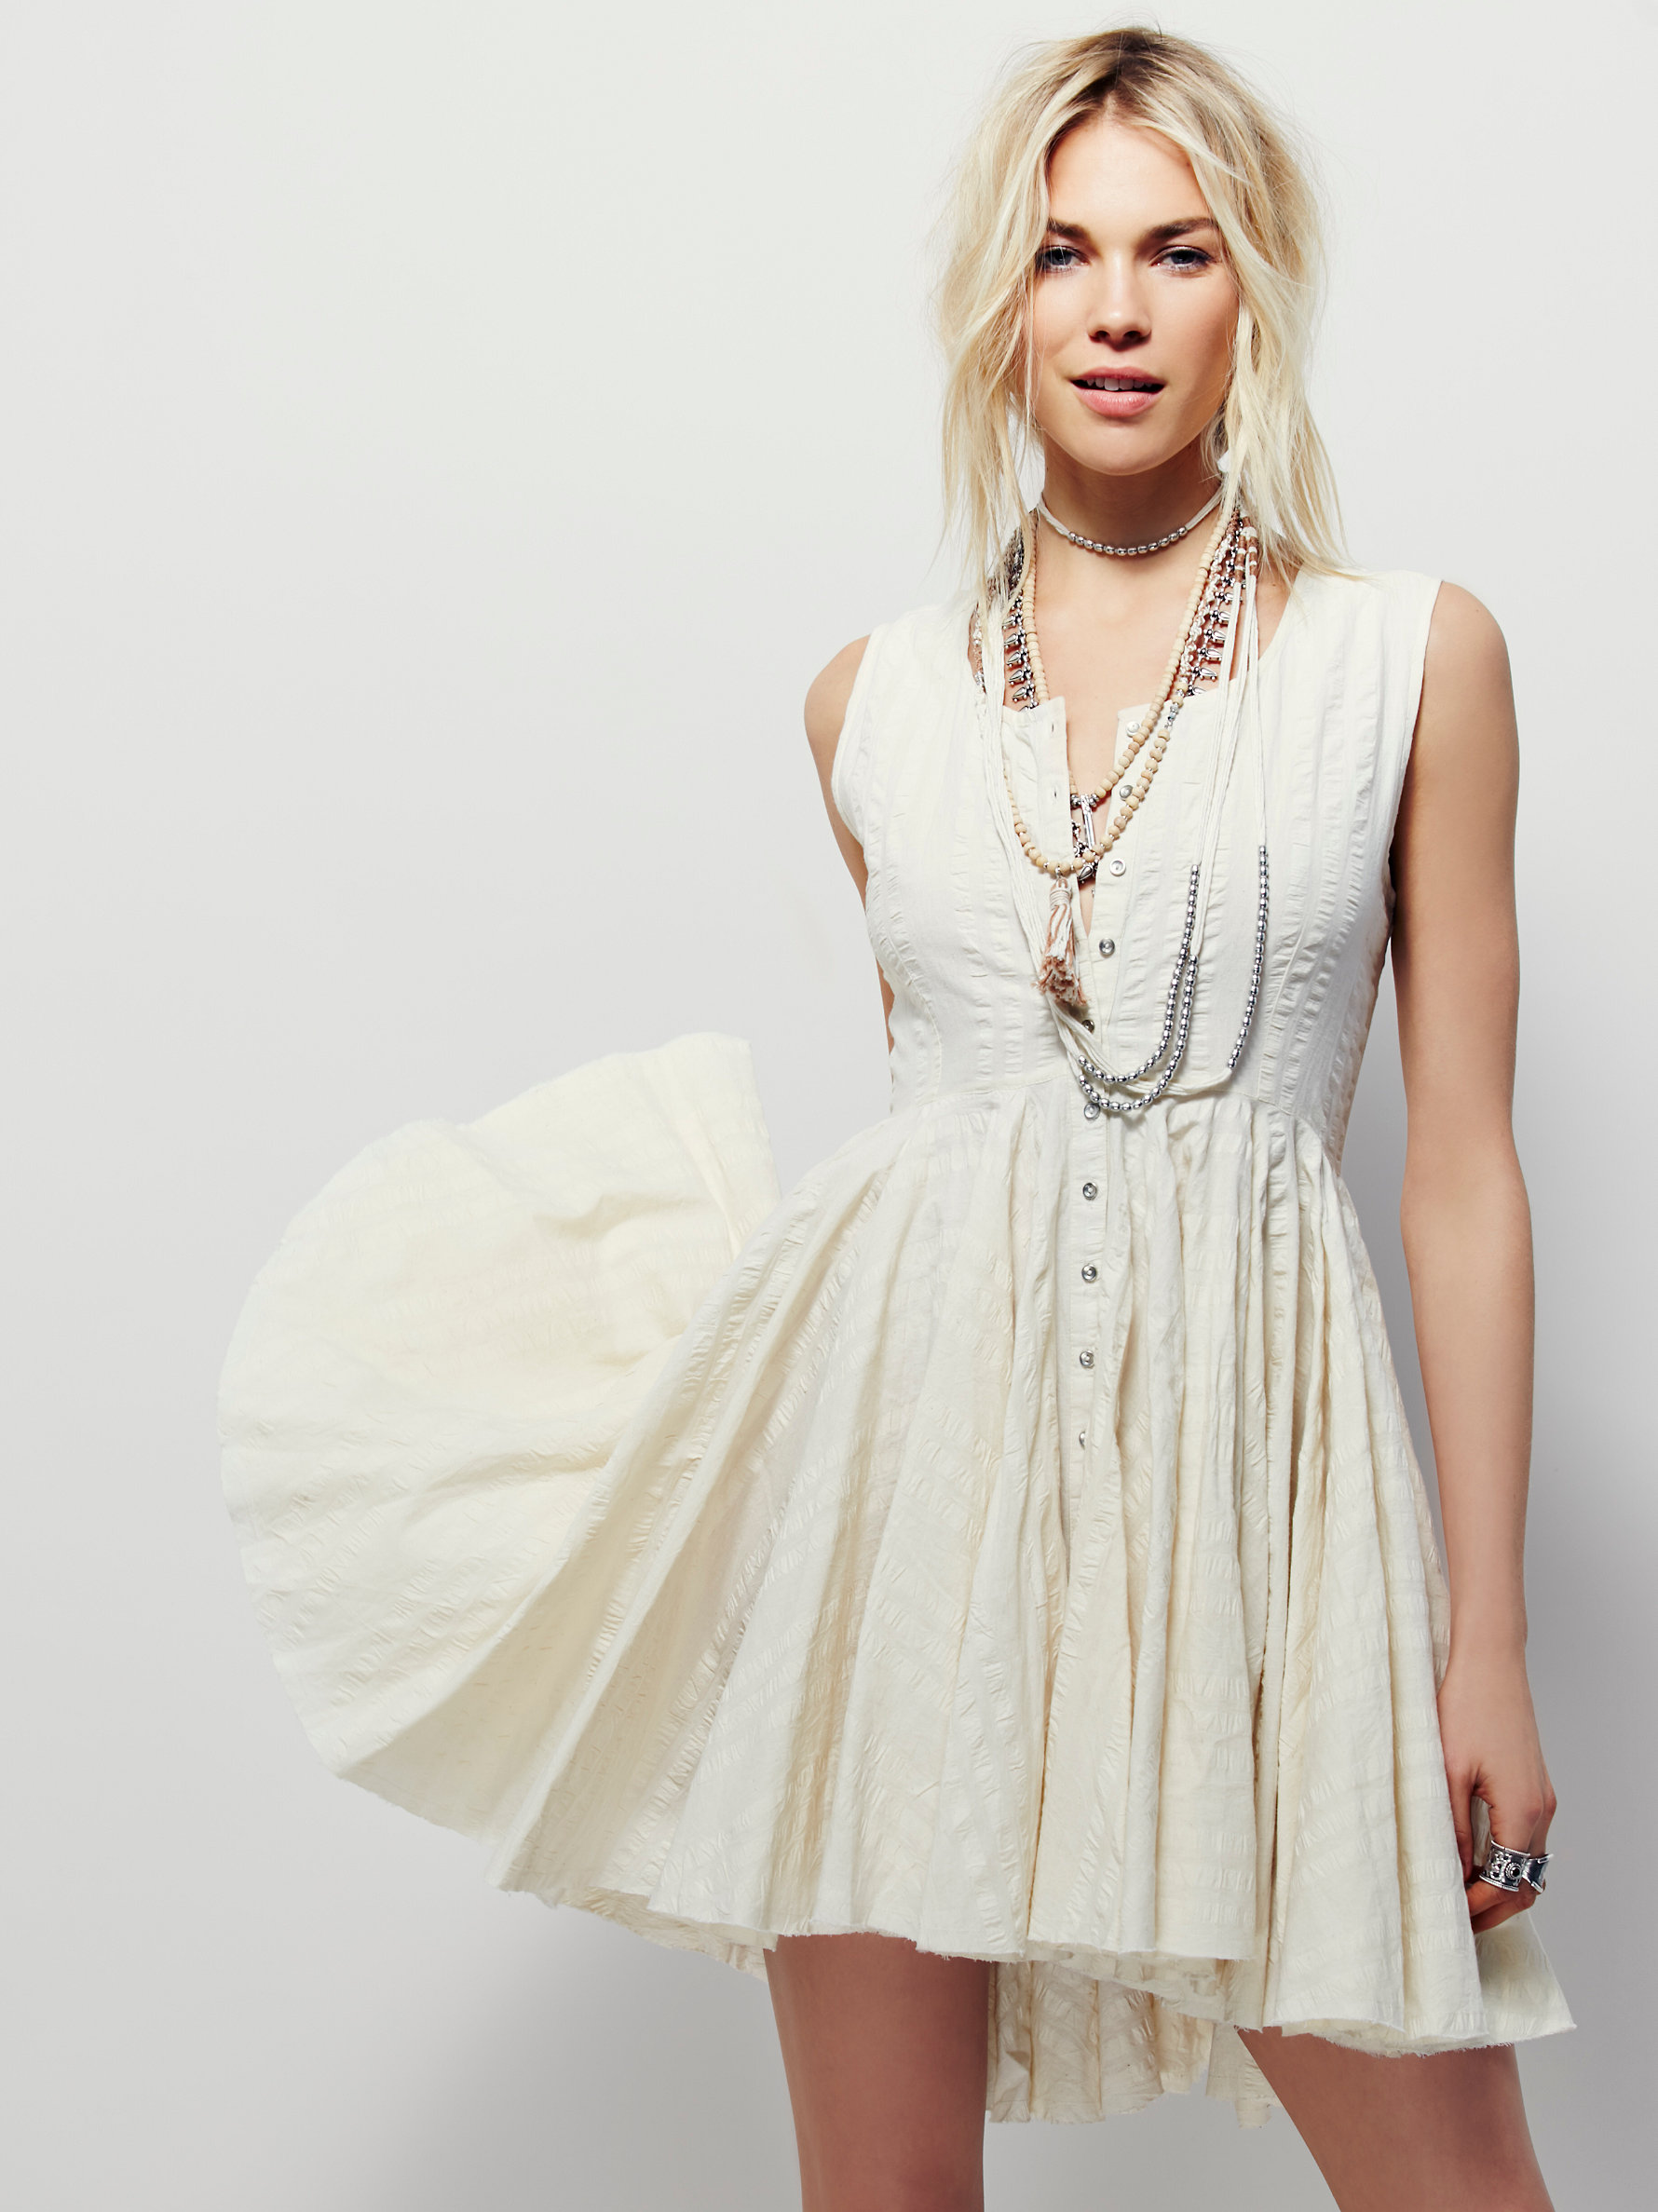 10 Perfect White Vacation Dresses - Free People Picnic Party Dress